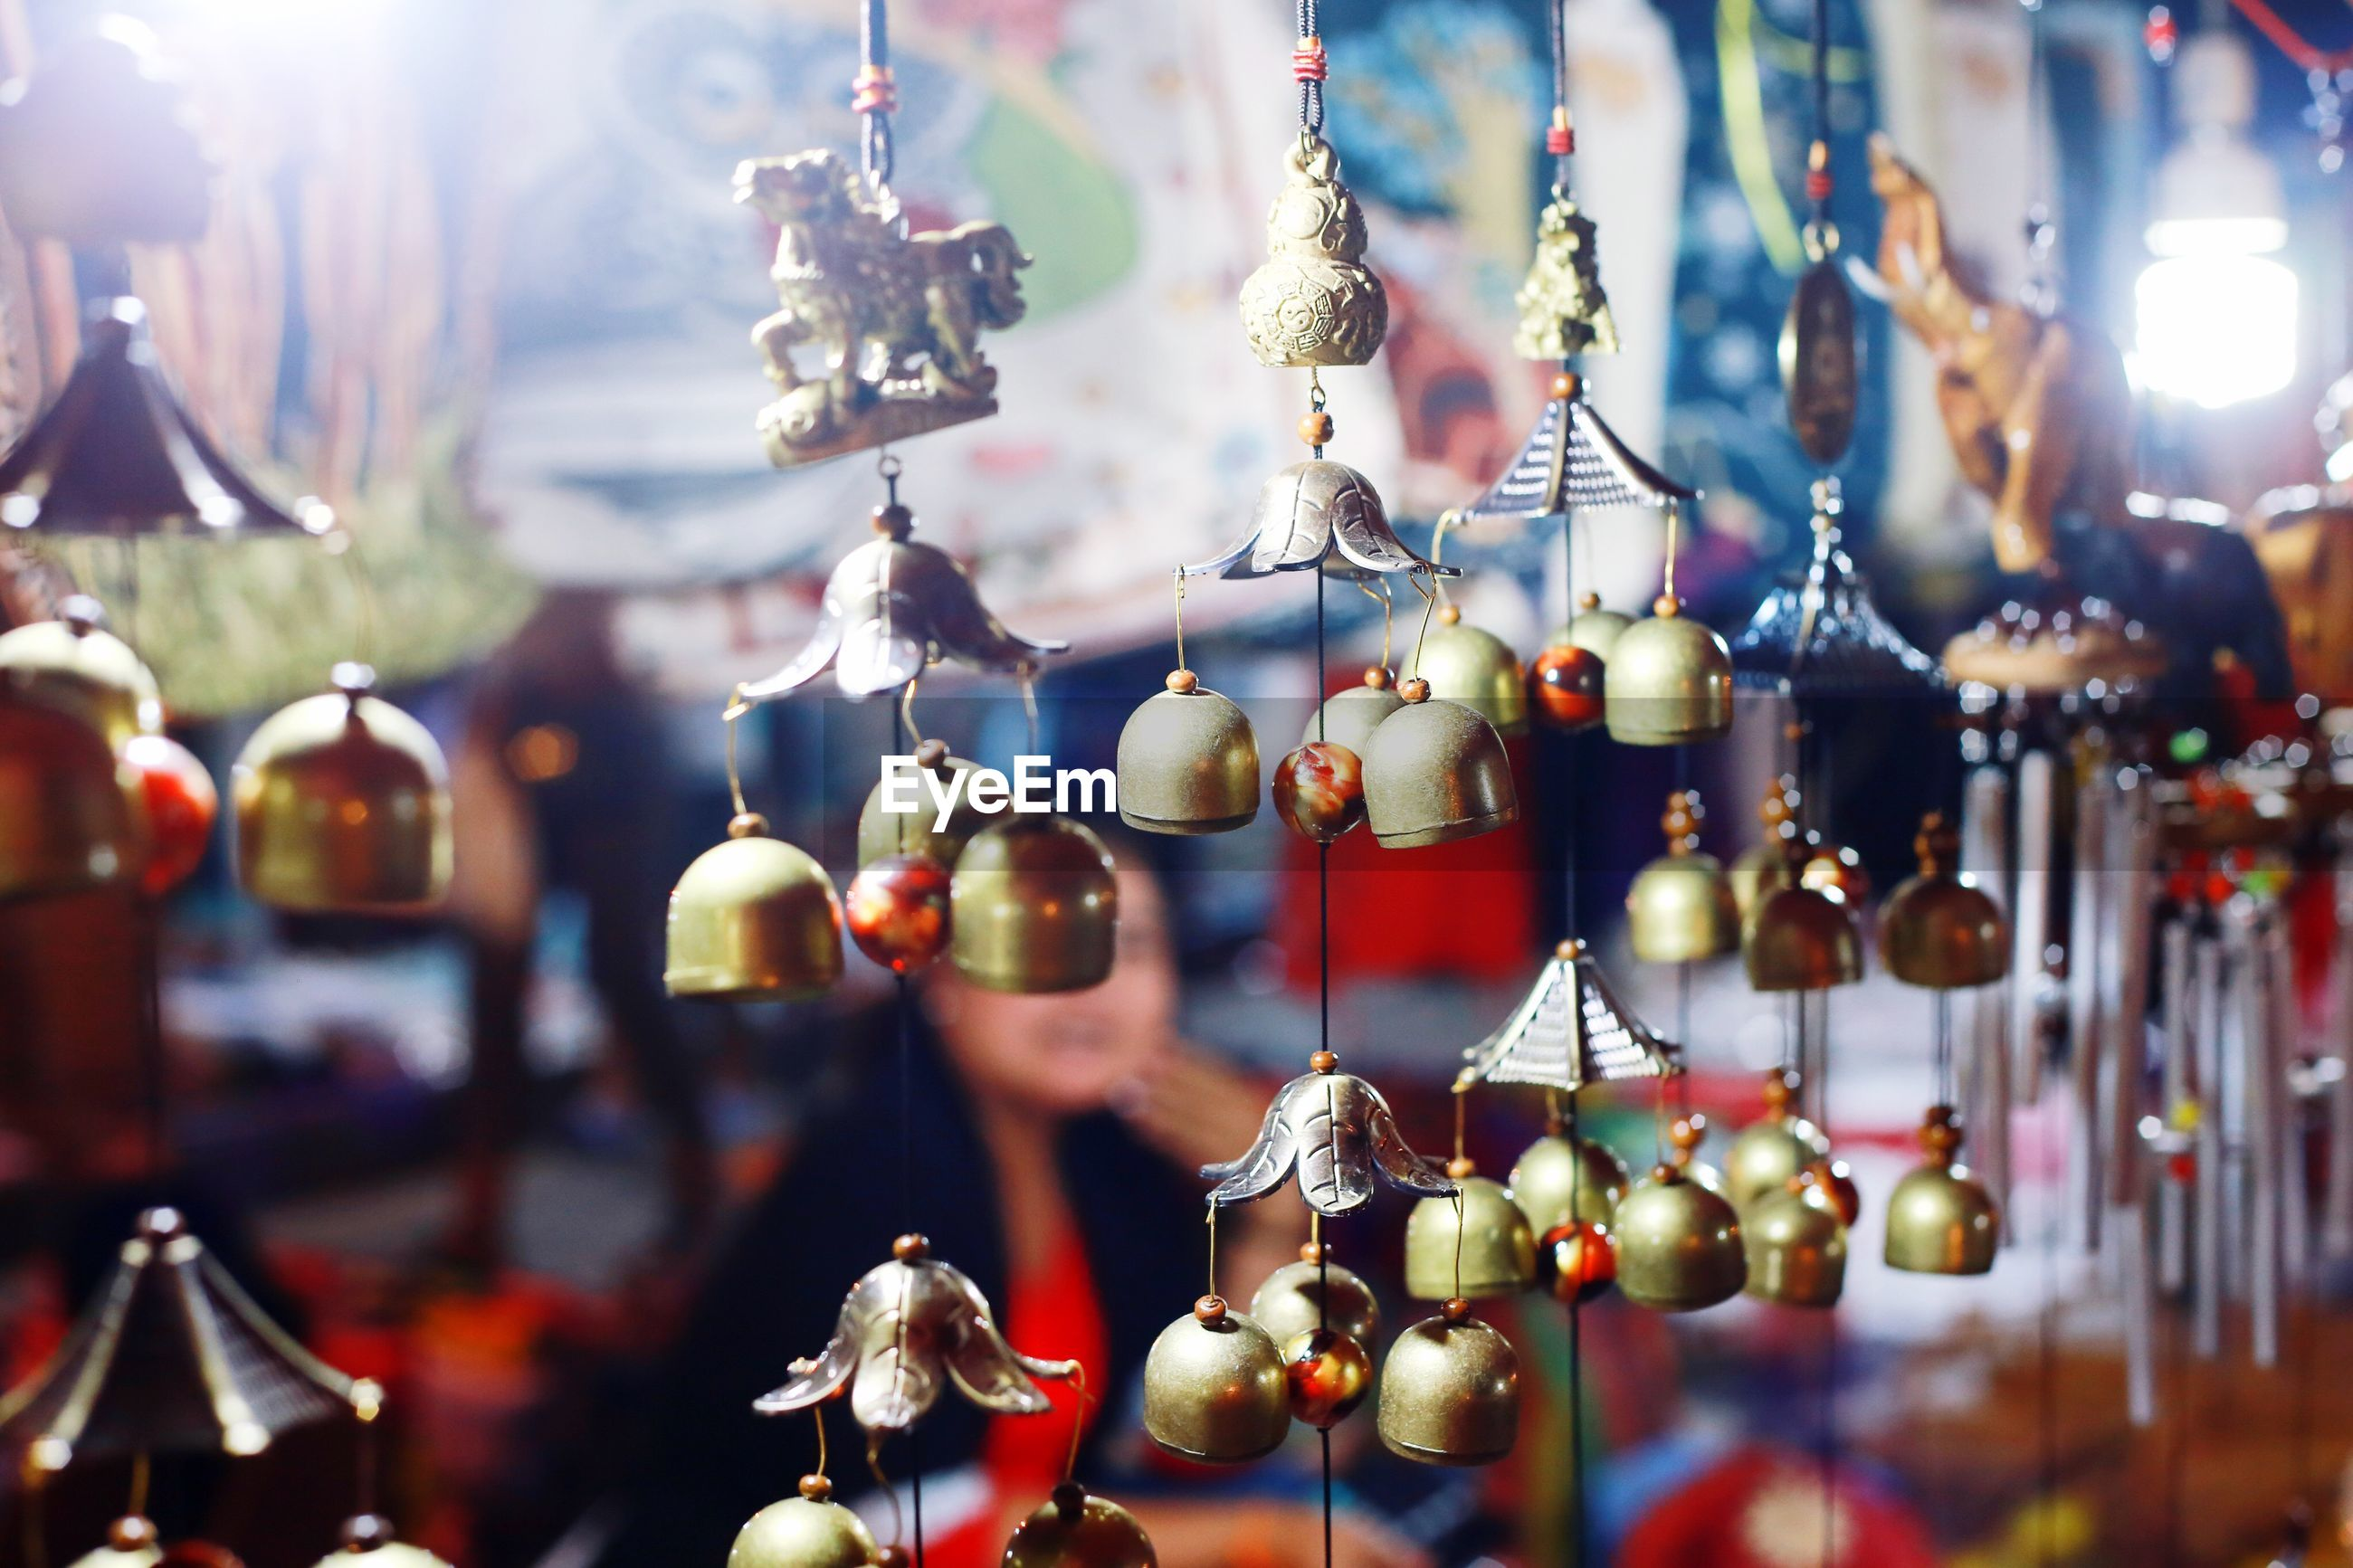 Close-up of wind chimes hanging for sale